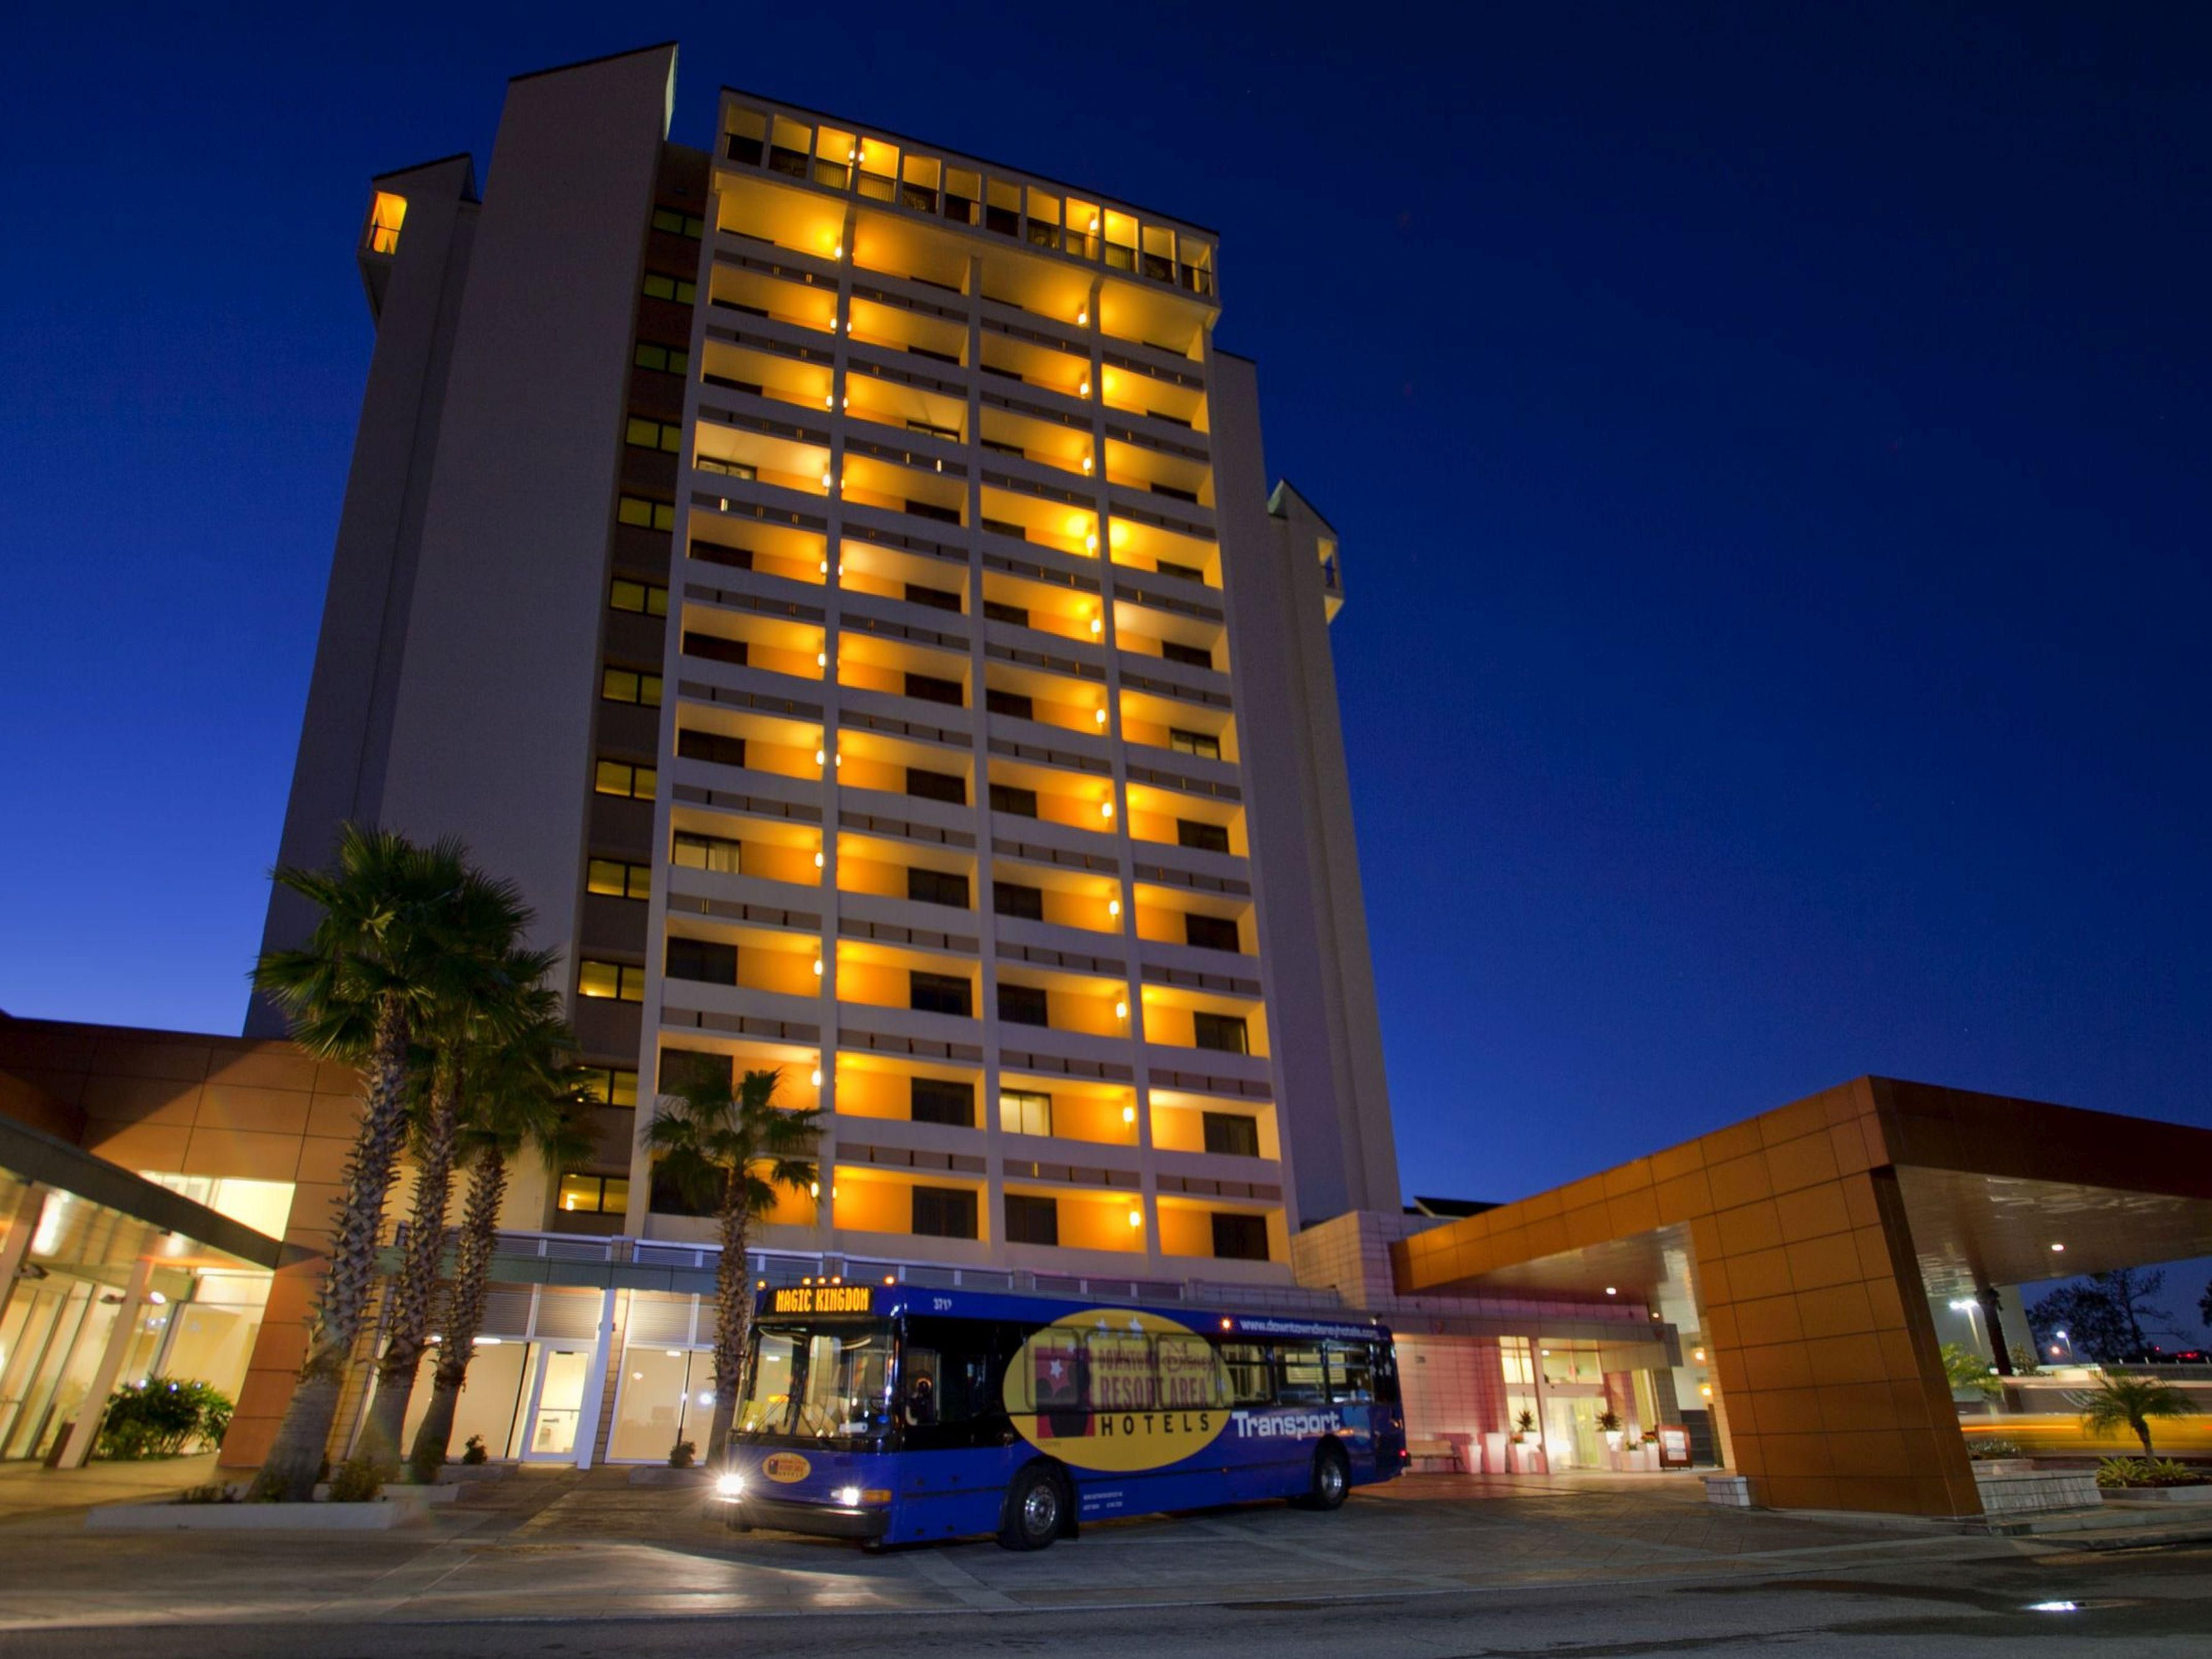 Theme park shuttles leave the hotel every 30 minutes